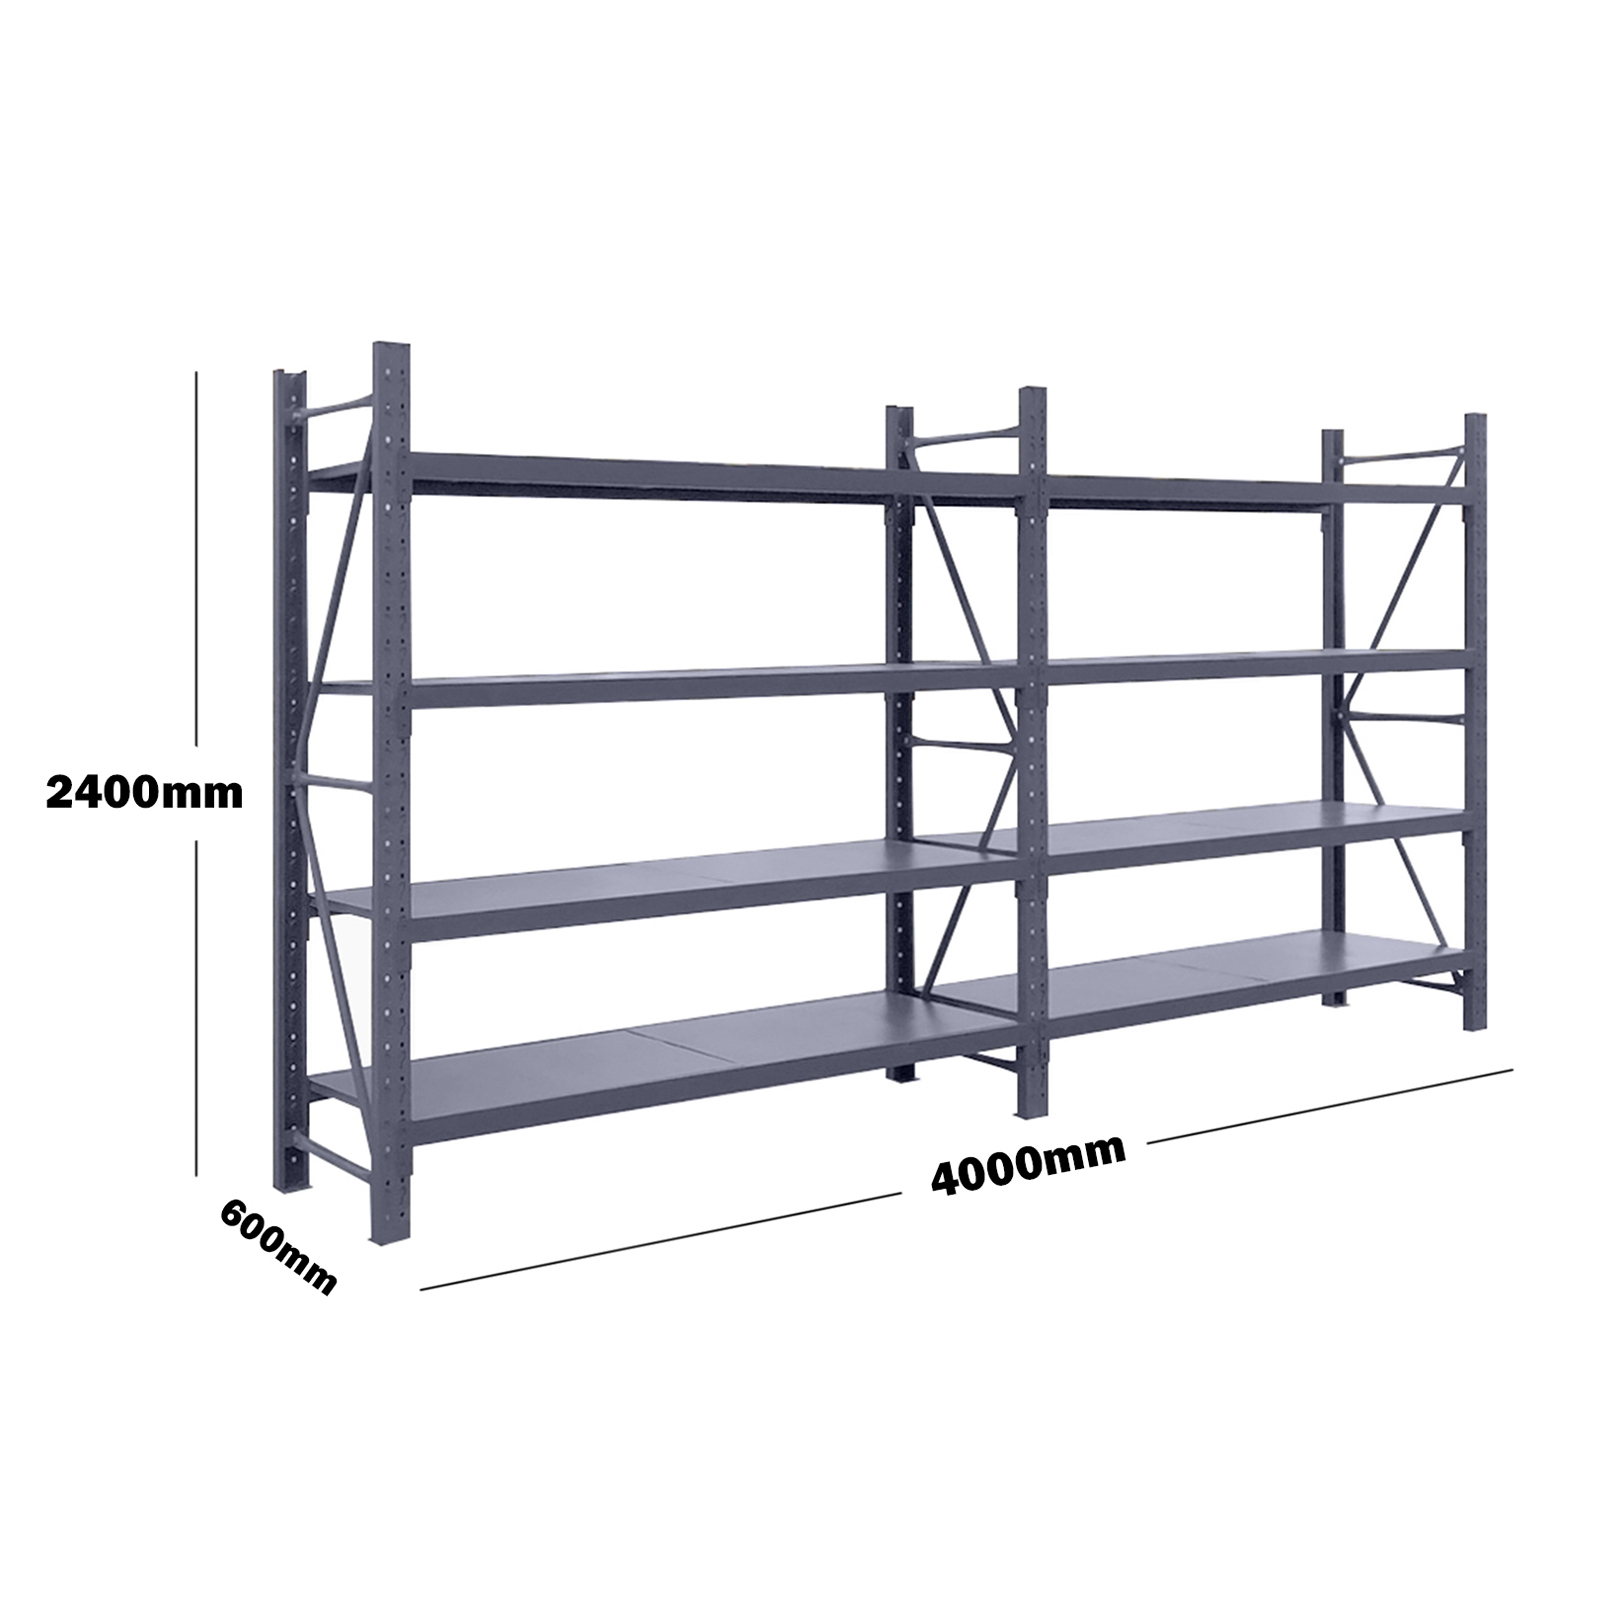 4M(L) x 2.4M(H) x 0.6M(D) Shelves Racking Metal Steel Charcoal 4024C